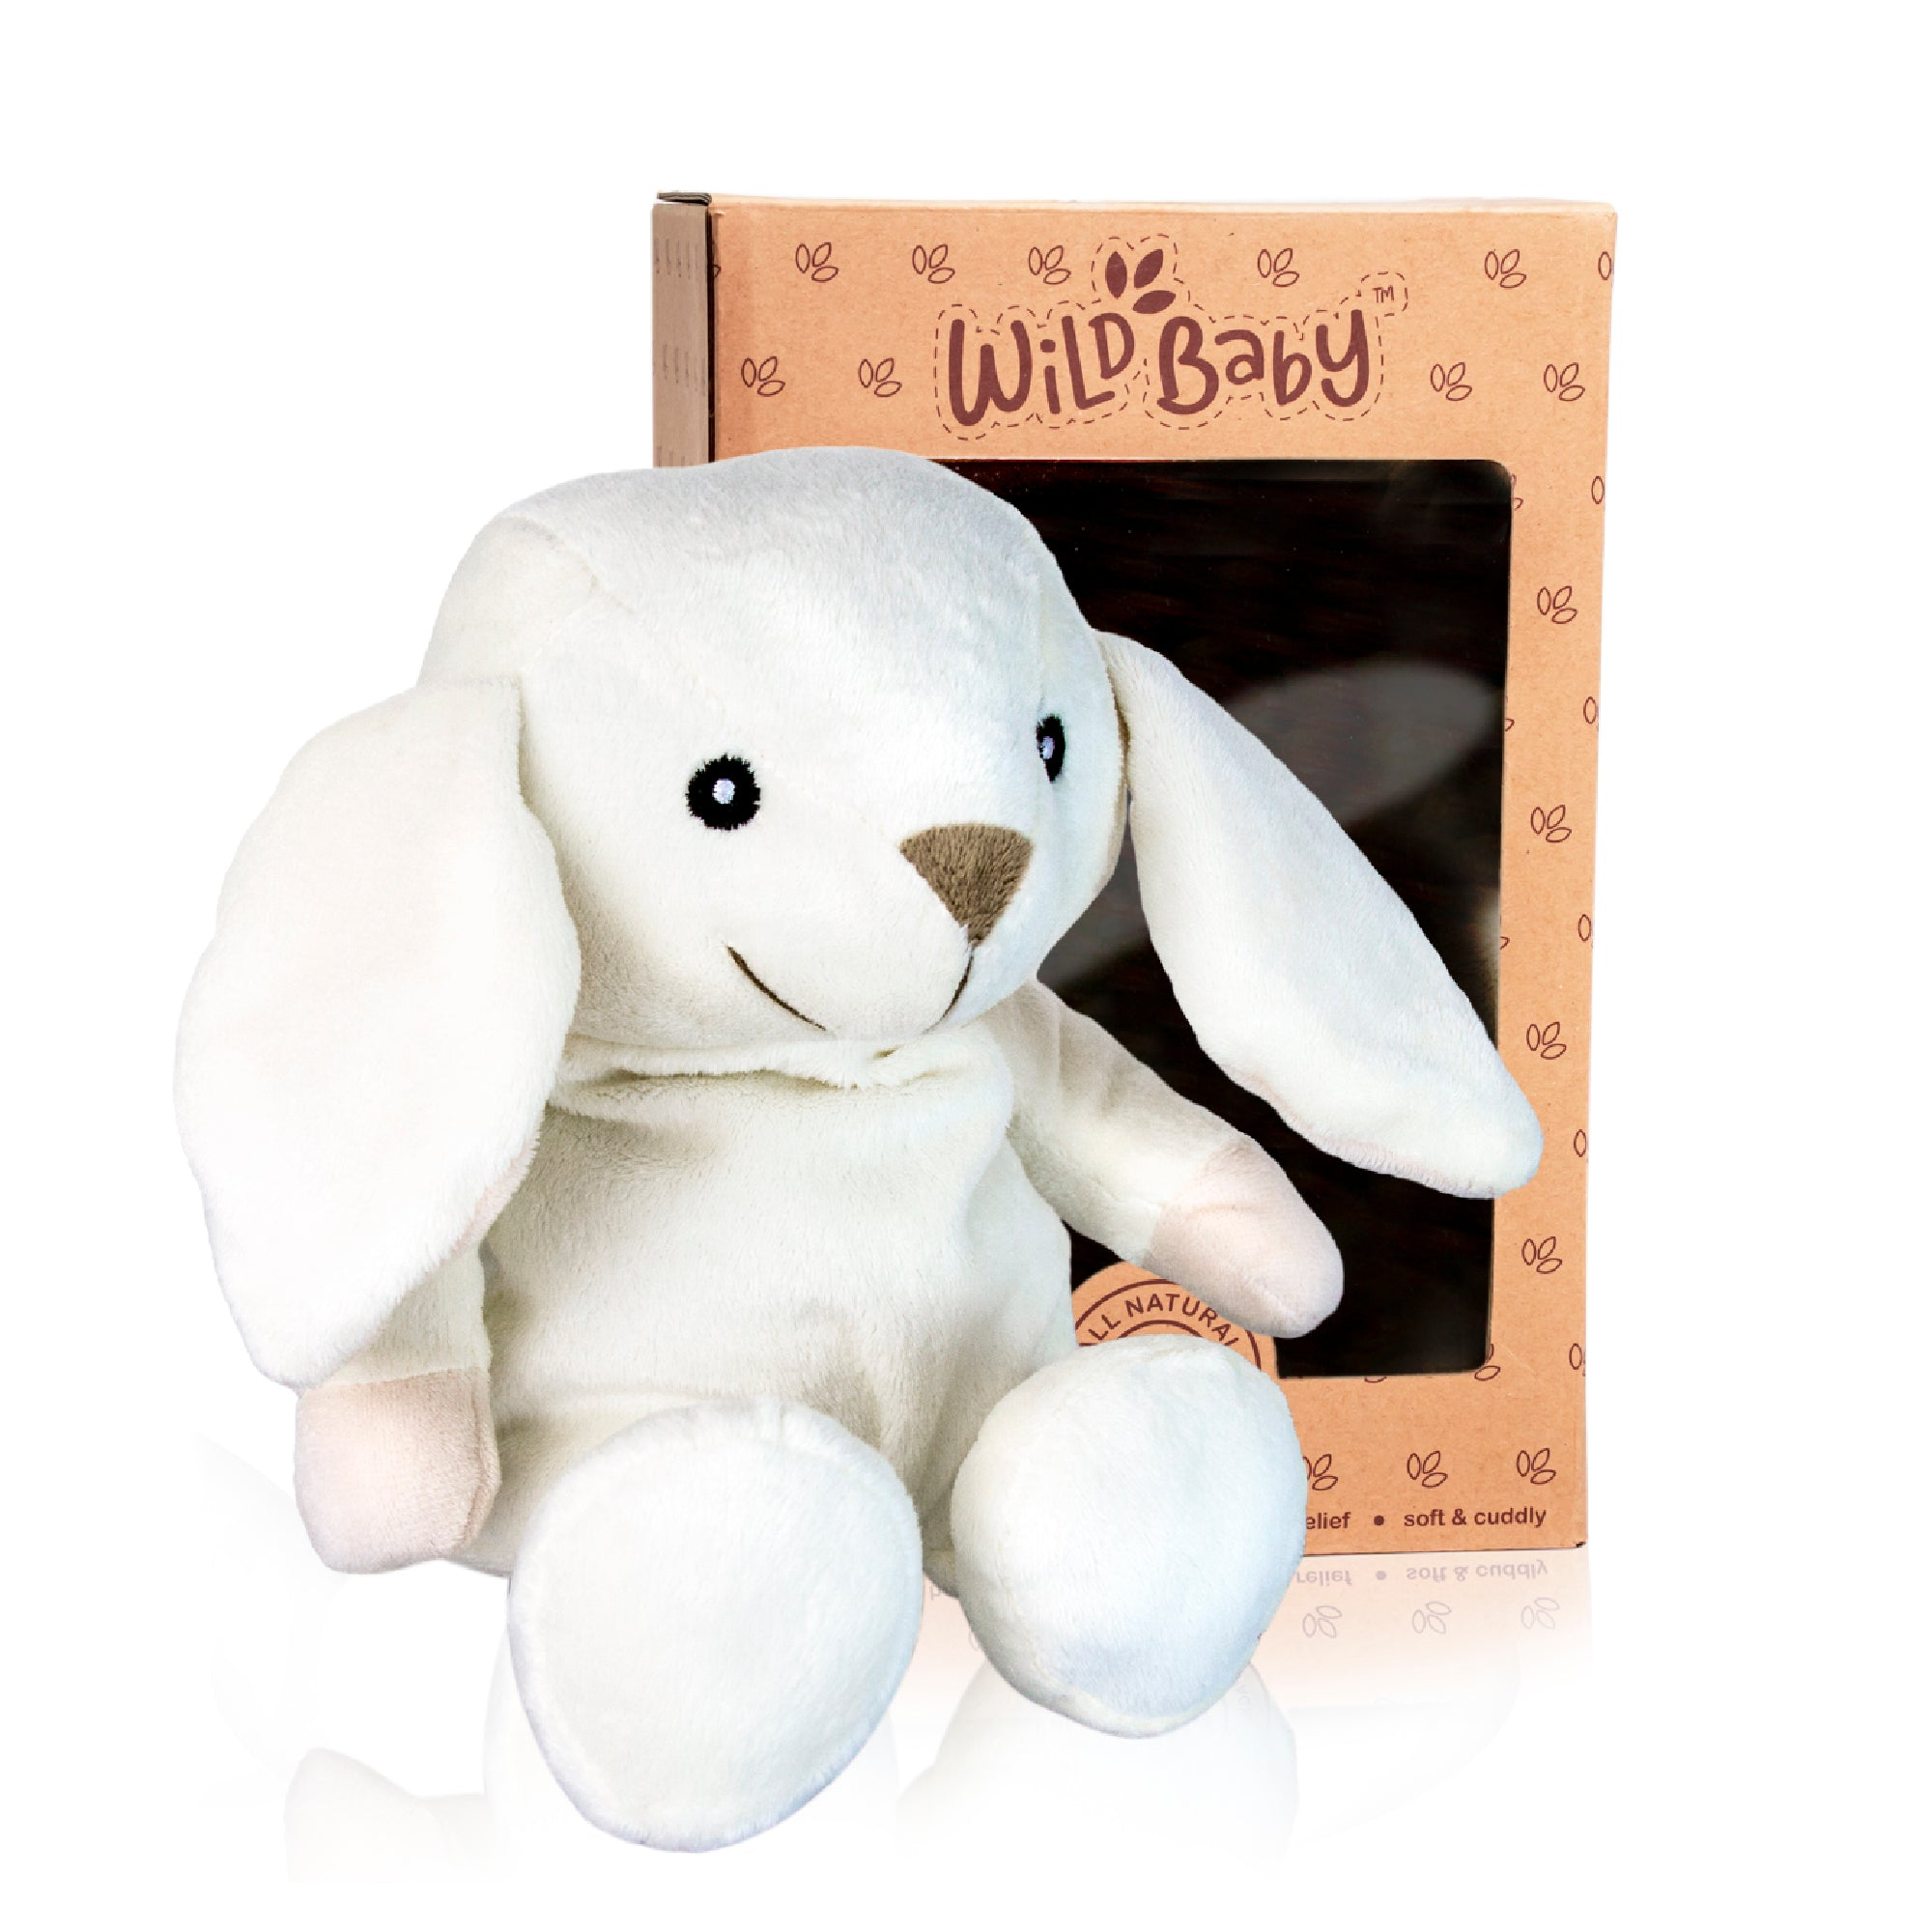 bunny rabbit stuffed animal